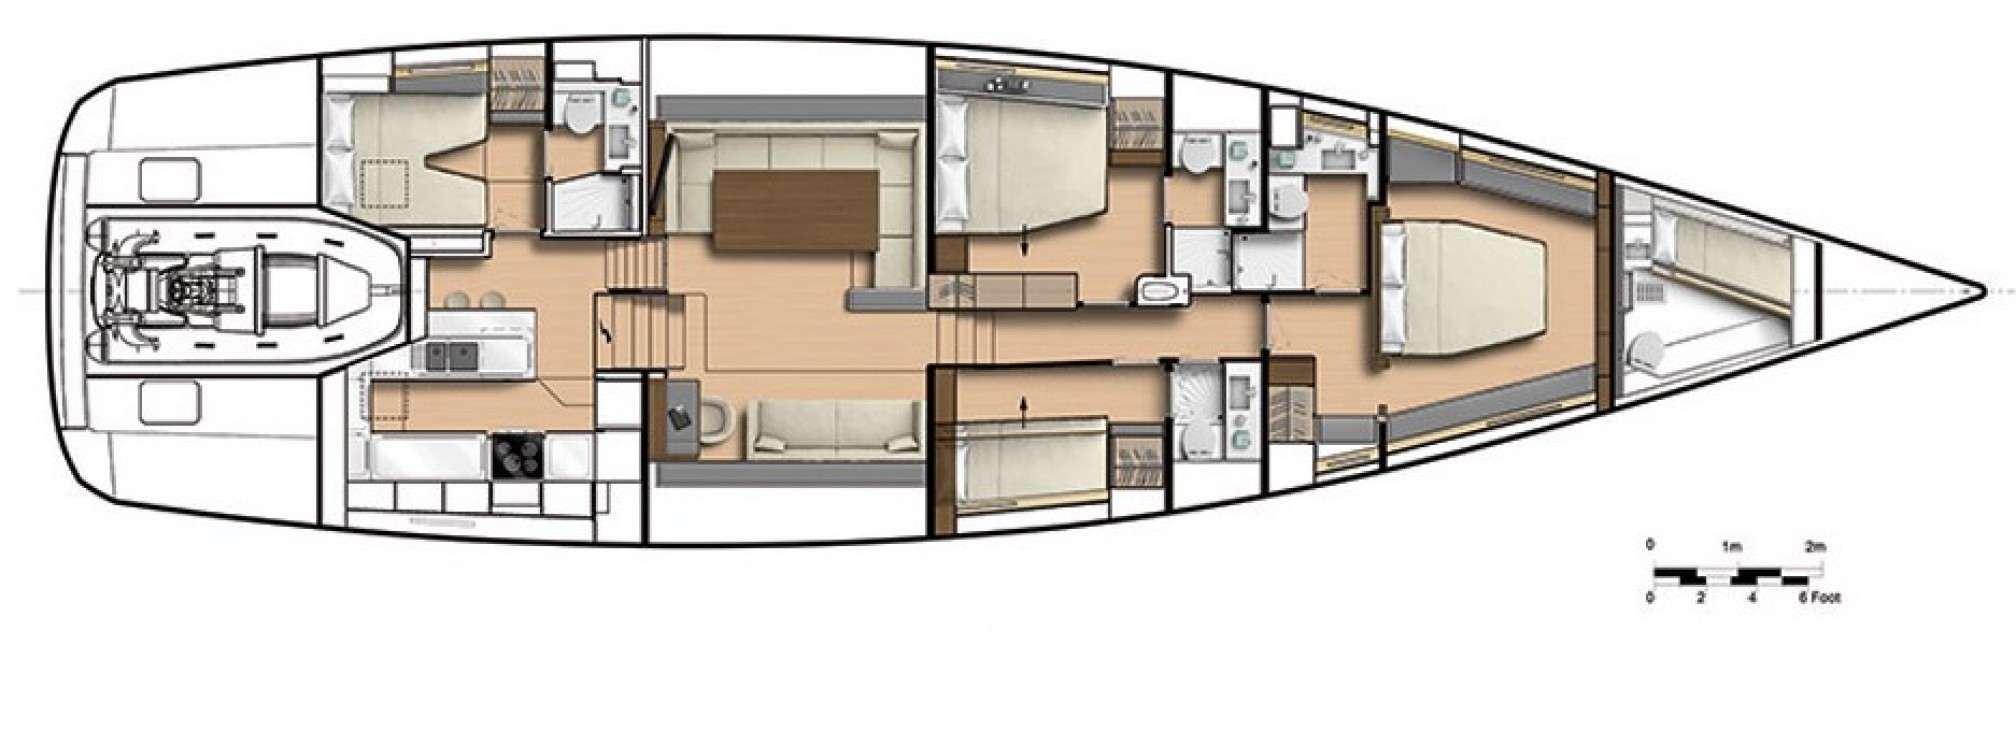 Leo Luxury Sailboat Layout